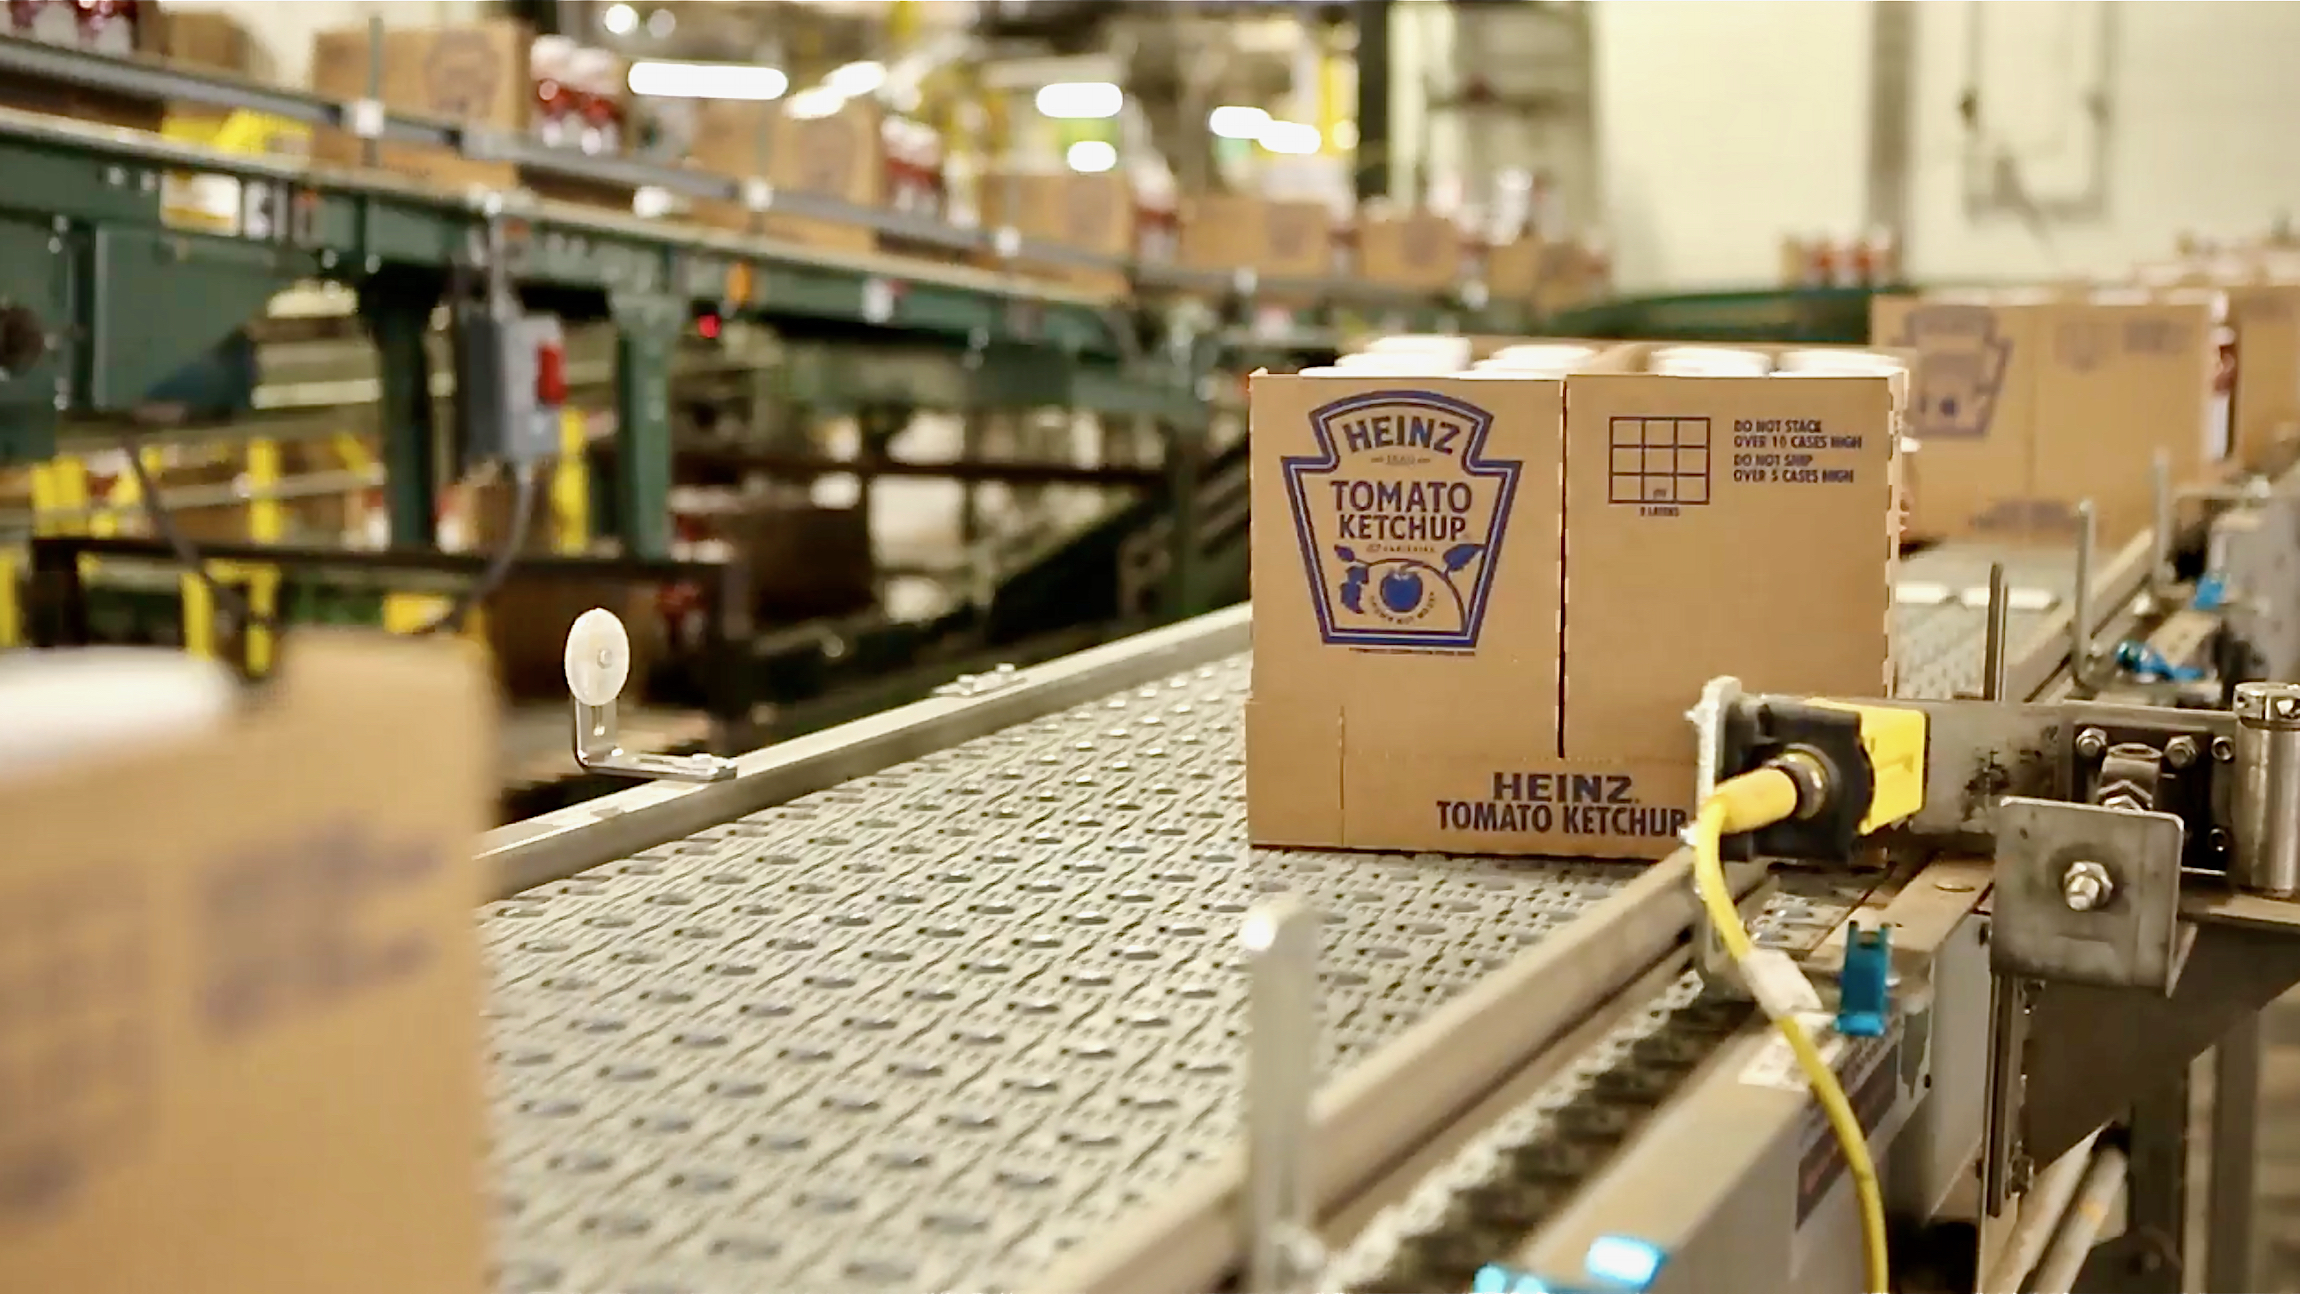 A cardboard box of Heinz ketchup moves on a conveyer belt, illustrating an article about Kraft Heinz.